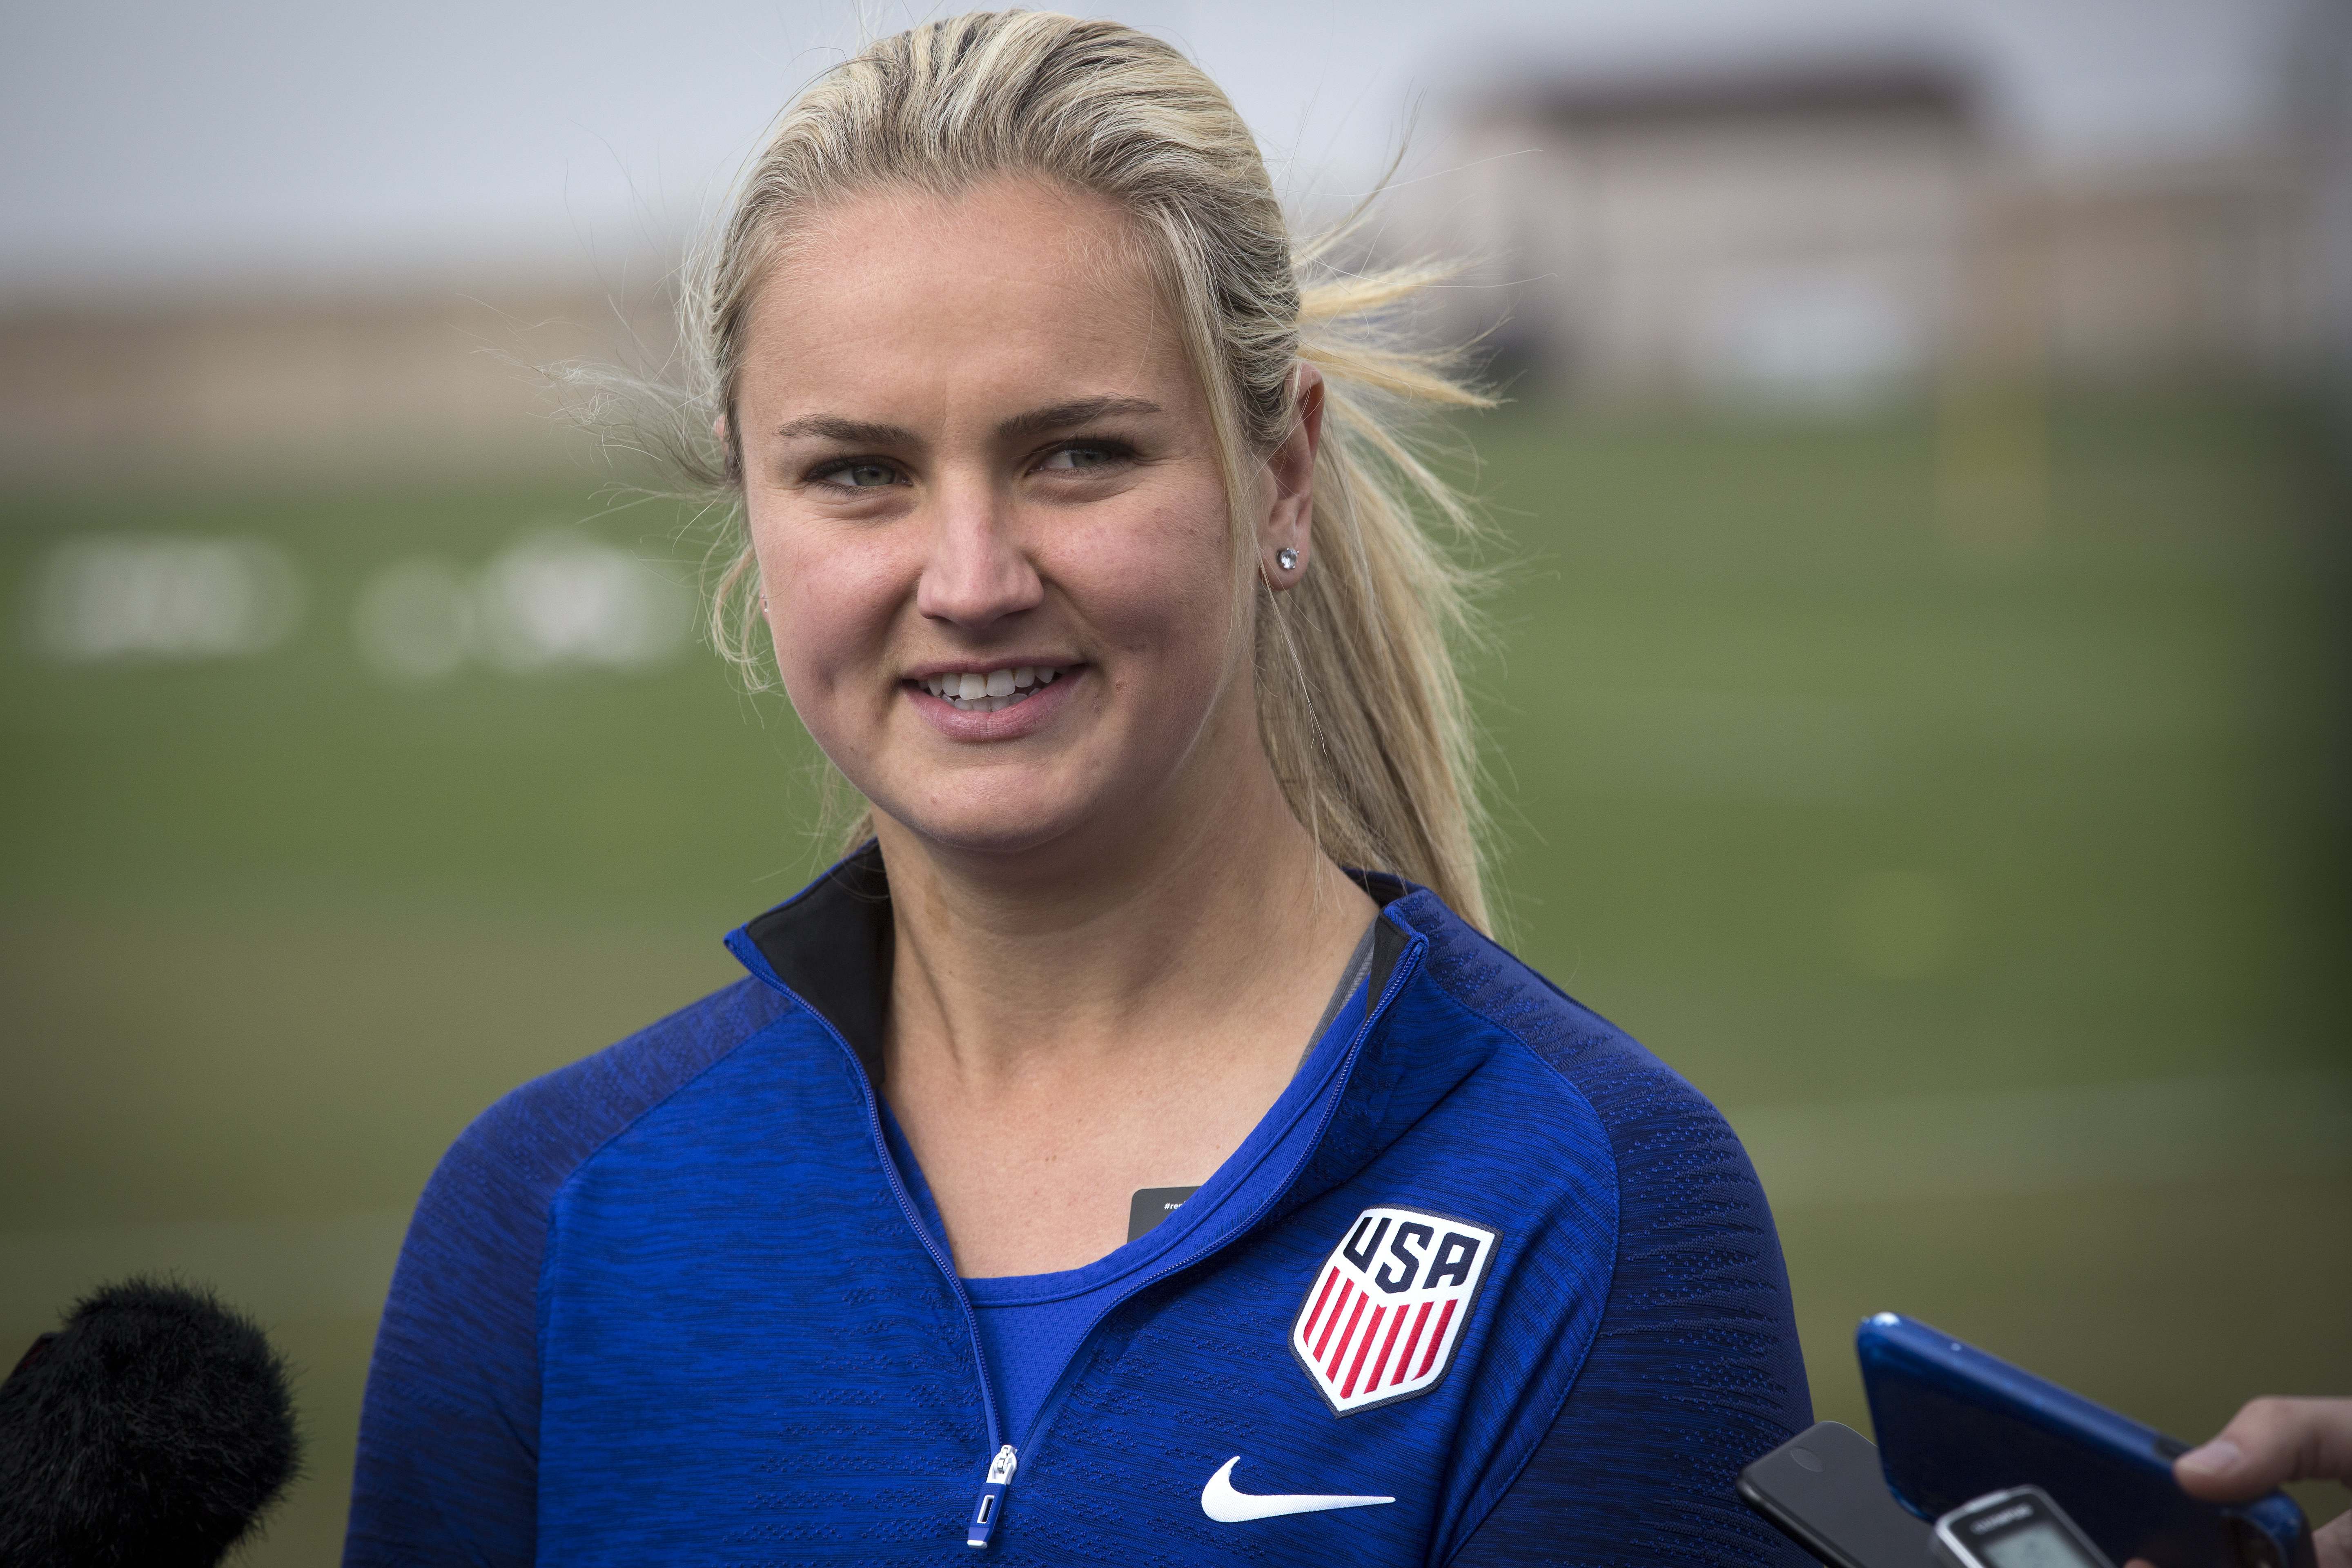 Women's National Team member Lindsey Horan of Golden on April 2, 2019.